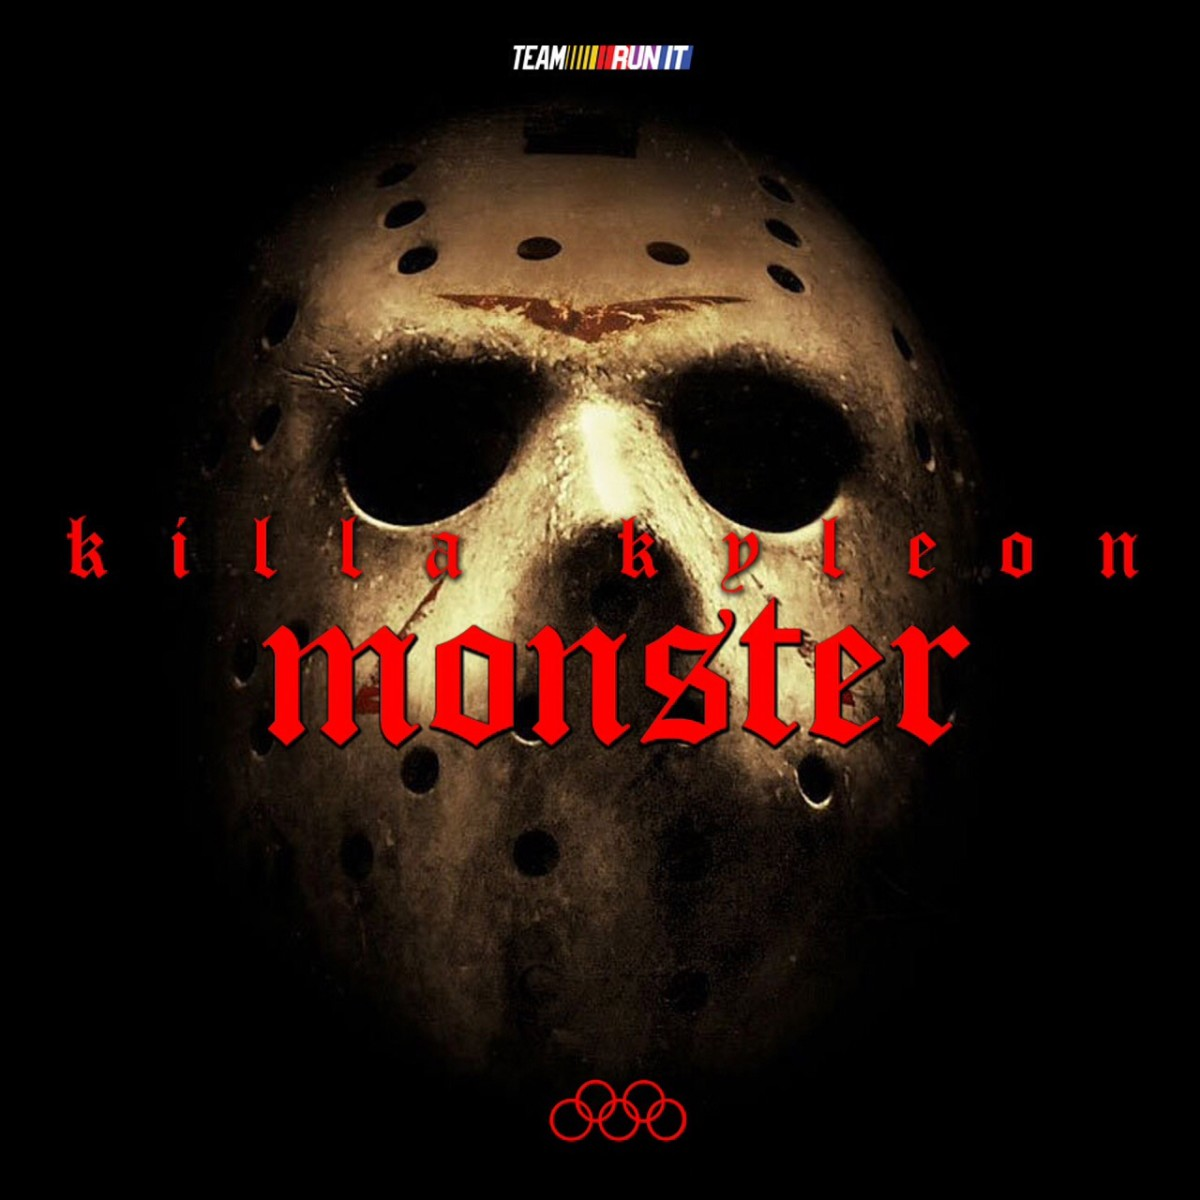 Killa Kyleon monster